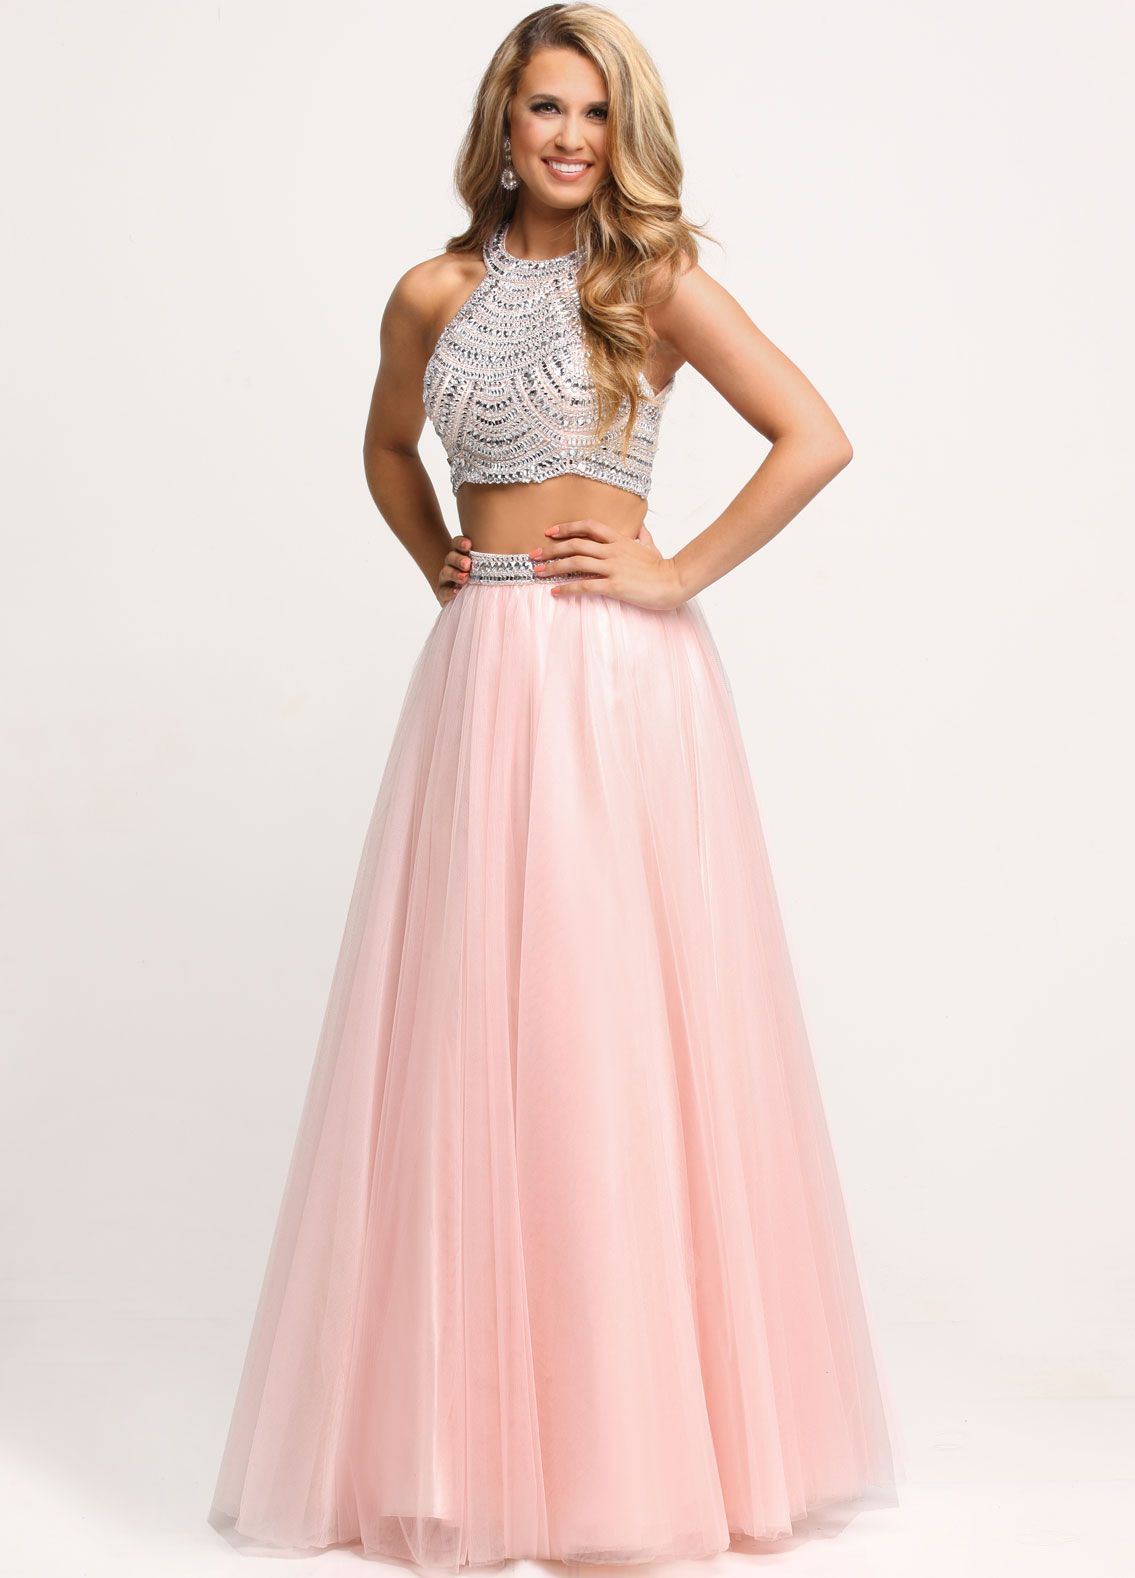 Sparkle Prom Style 71686A | TJ\'s Prom 2017 | Pinterest